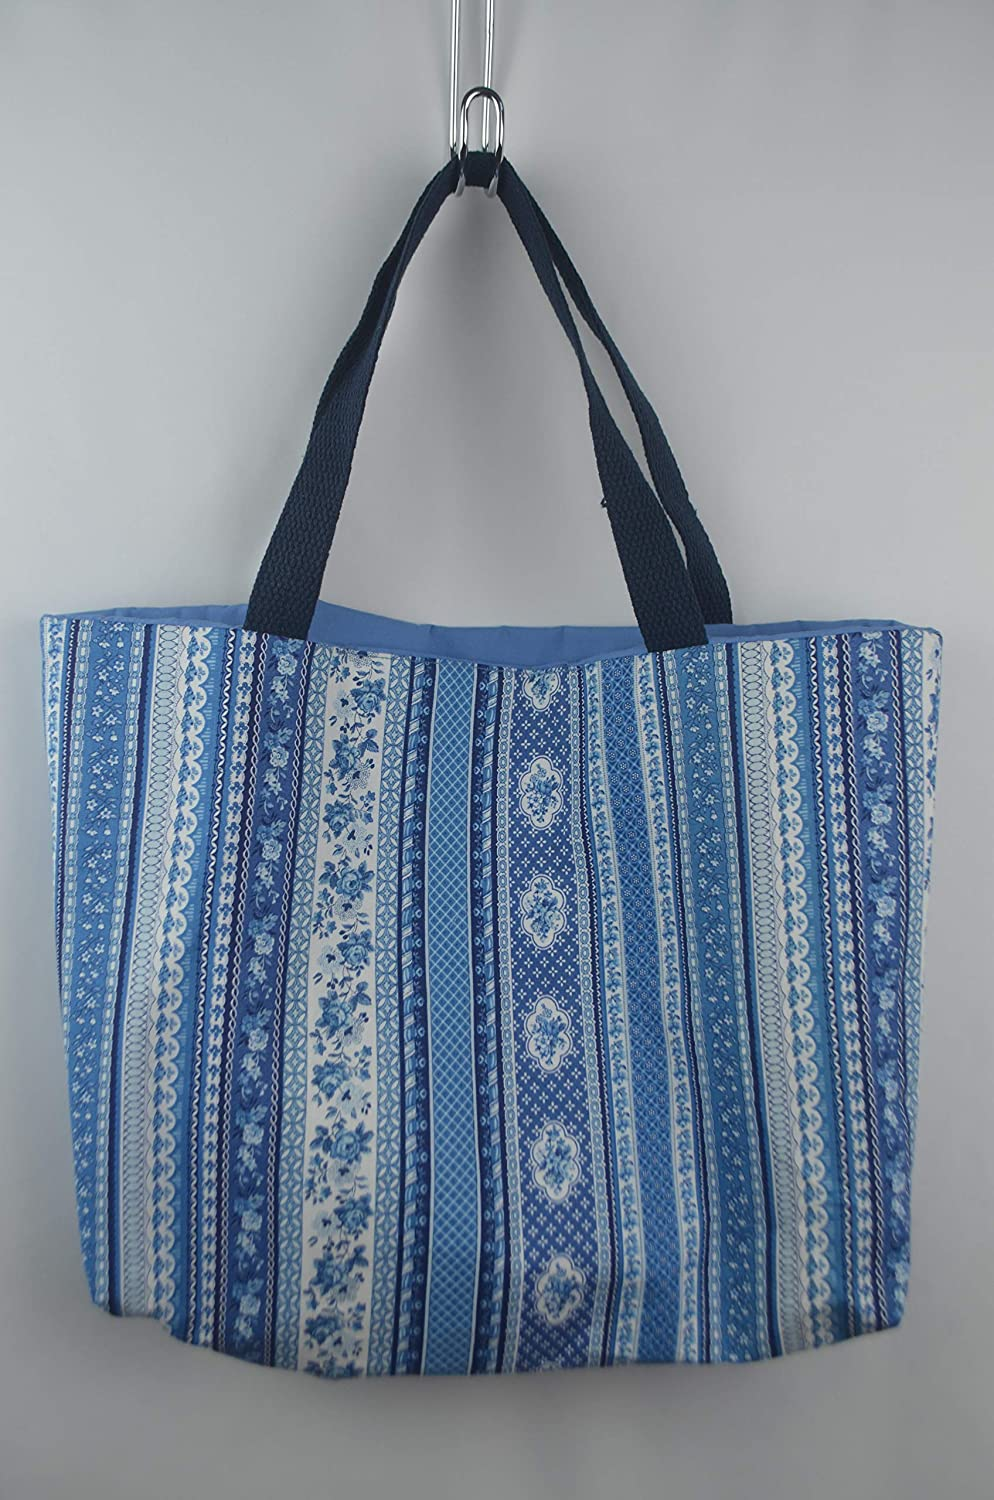 Indigo Blue New Orleans Mall Now on sale Flower Stripe Tote